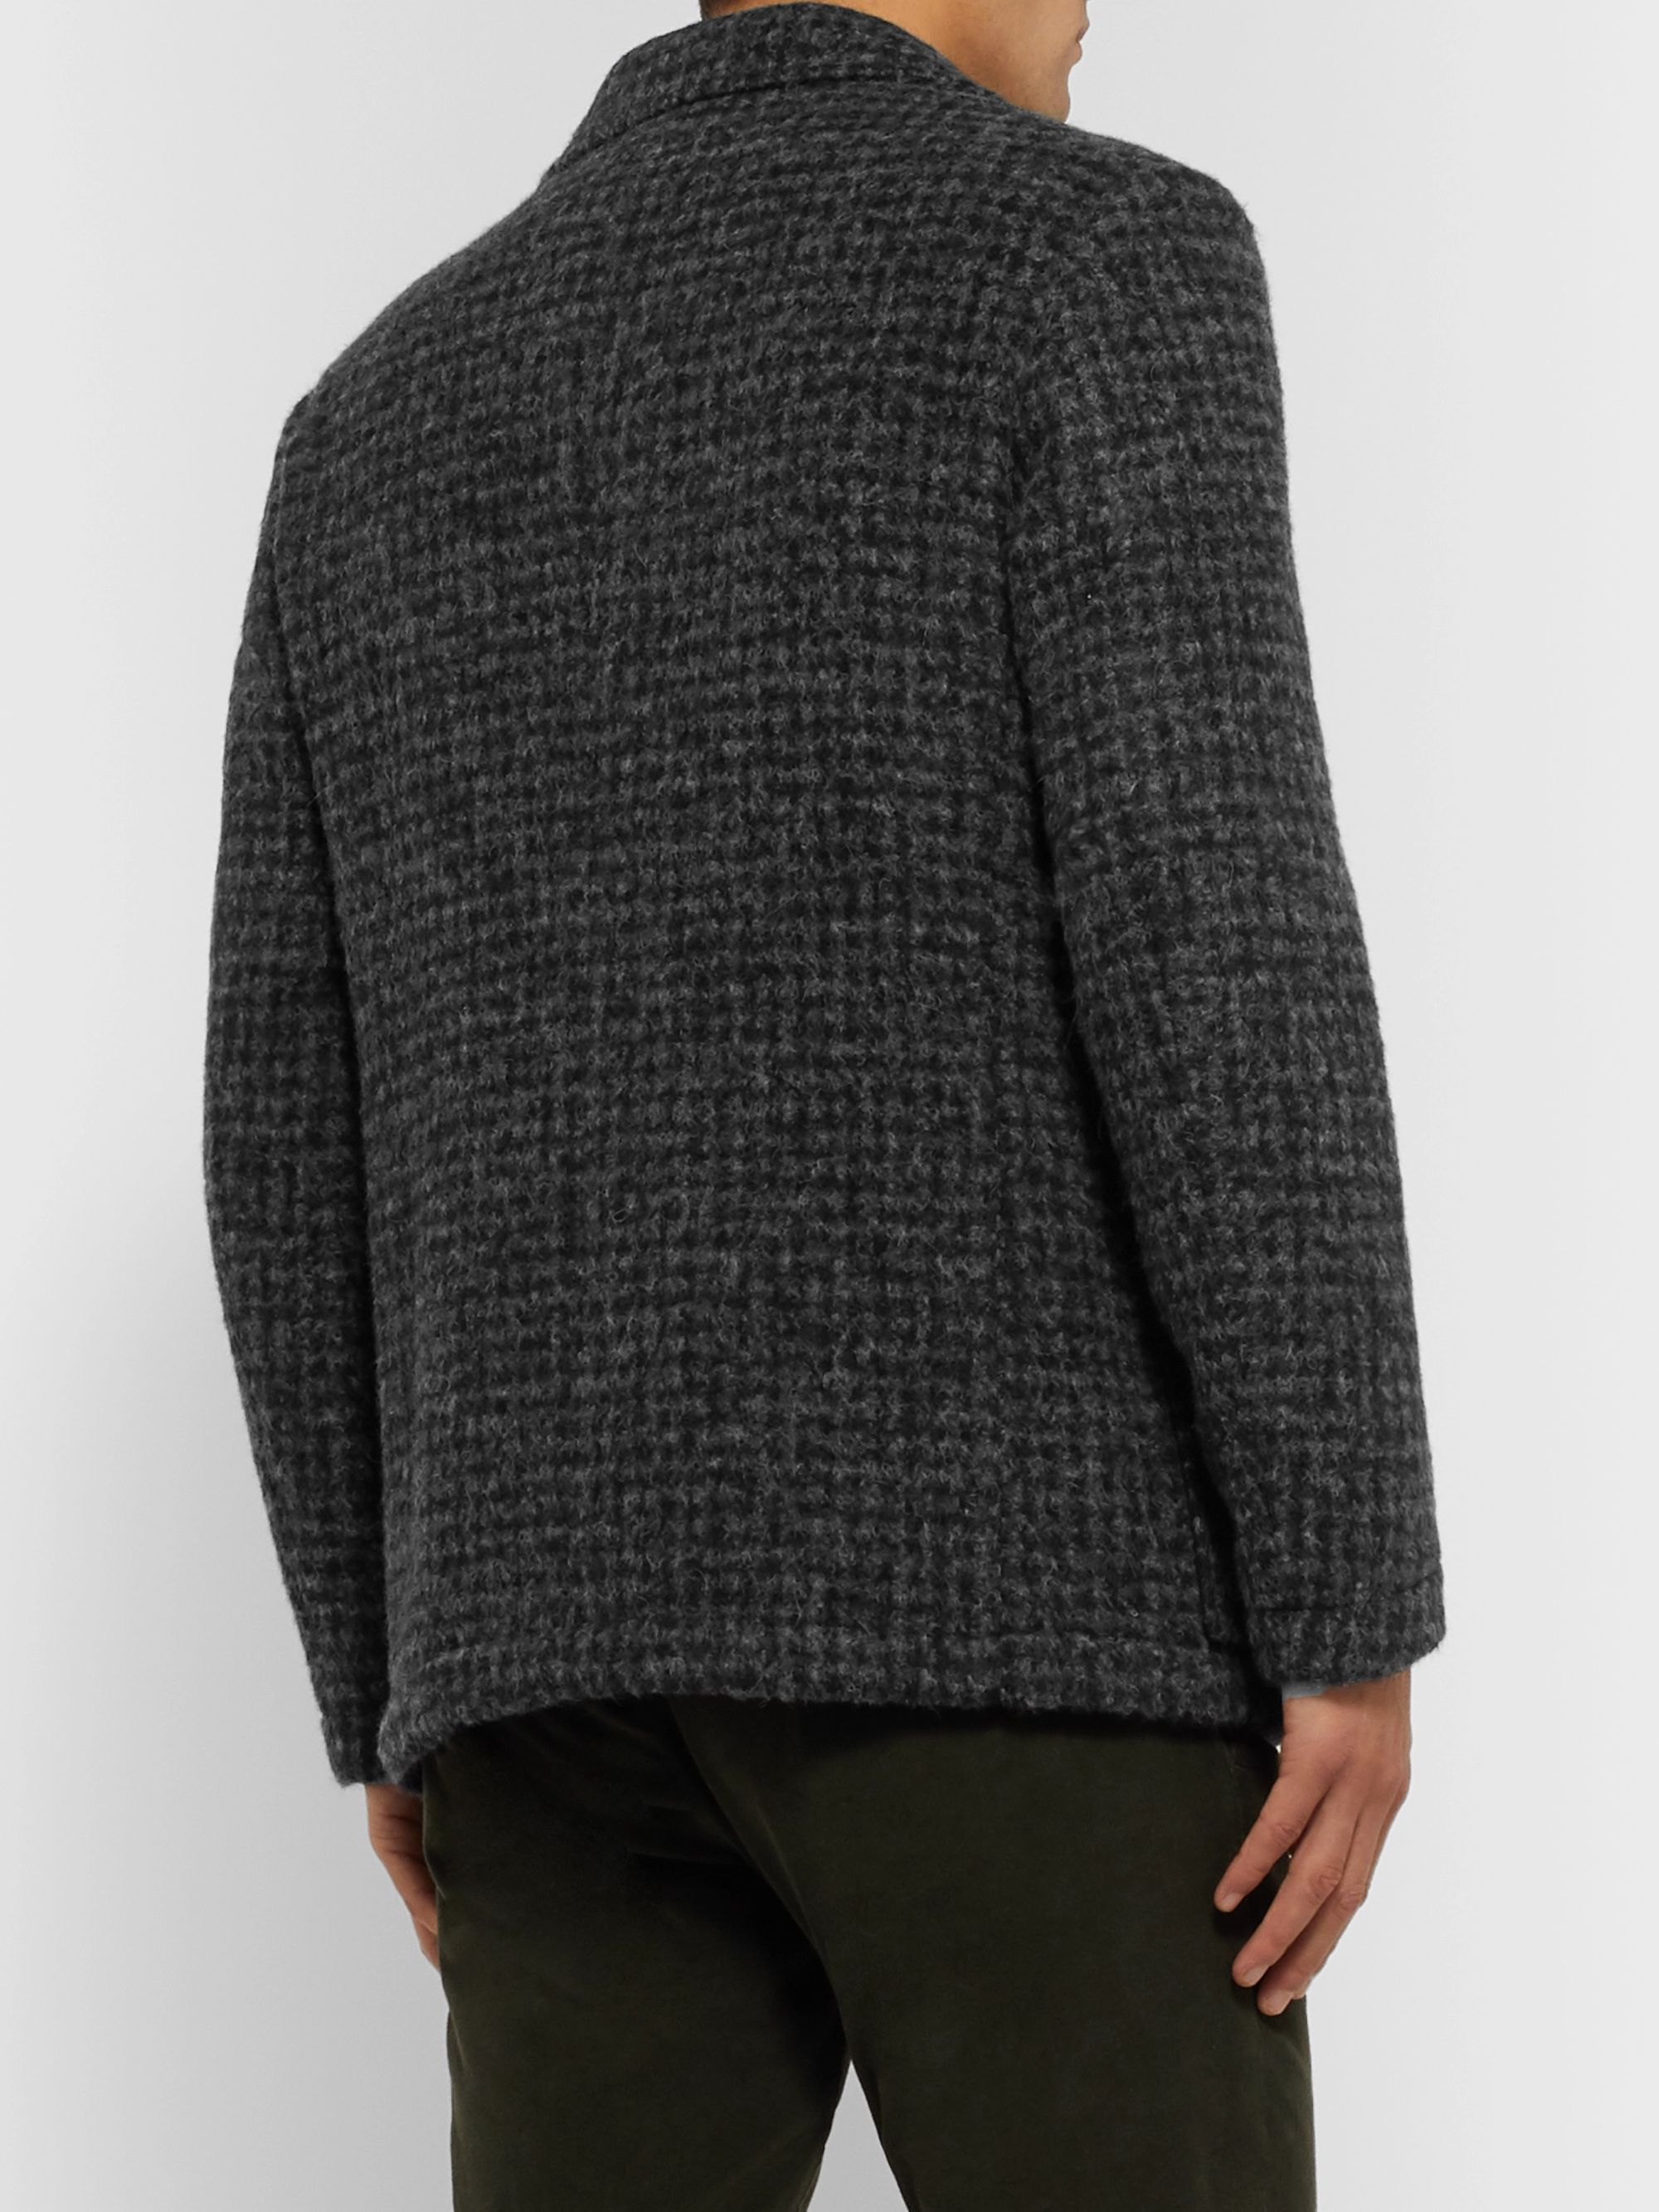 MP Massimo Piombo Klee Houndstooth Alpaca-Blend Jacket